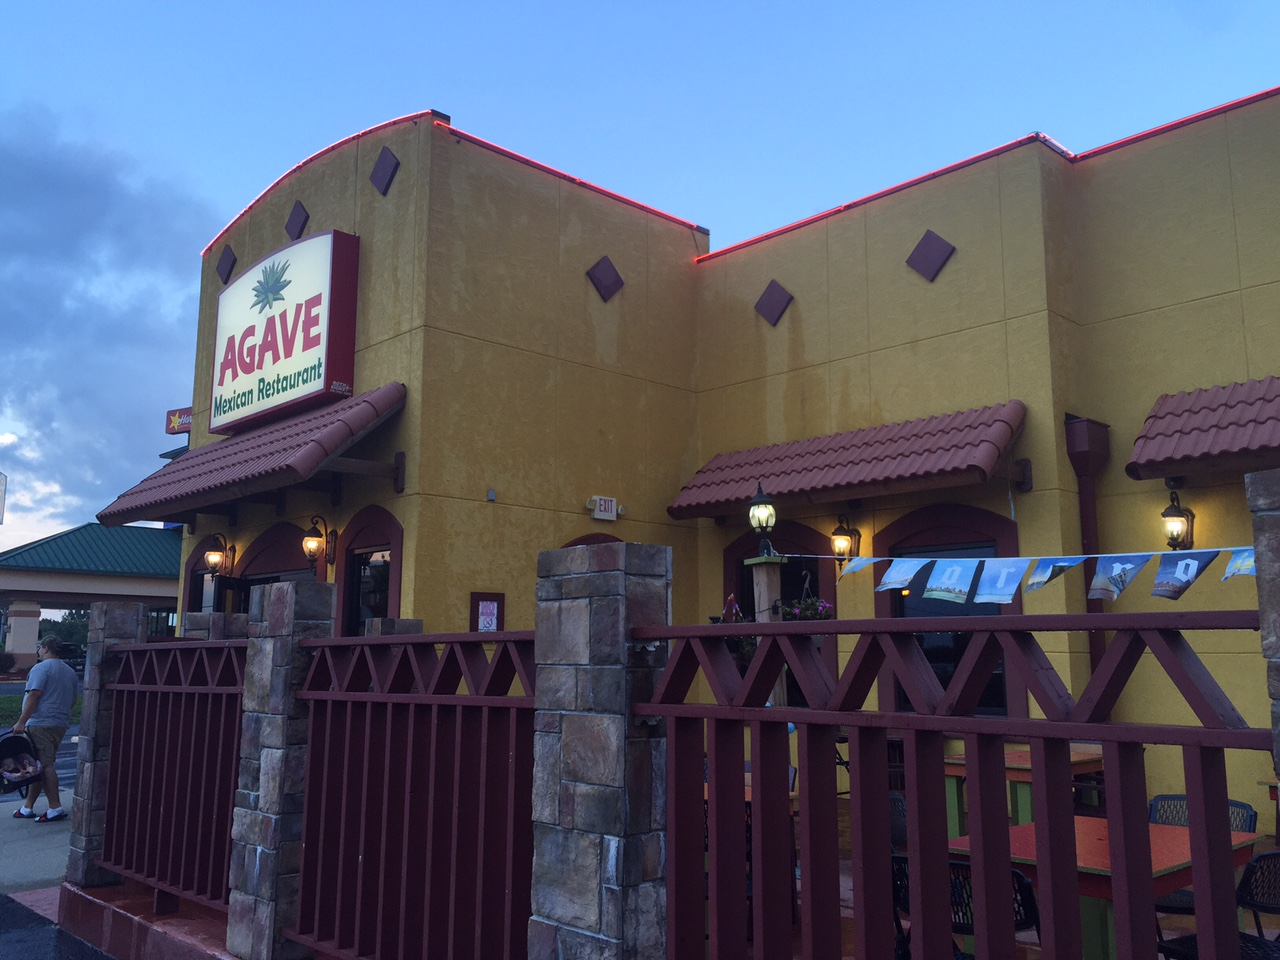 Agave Mexican Restaurant Mt Vernon Illinois Up Down Travel